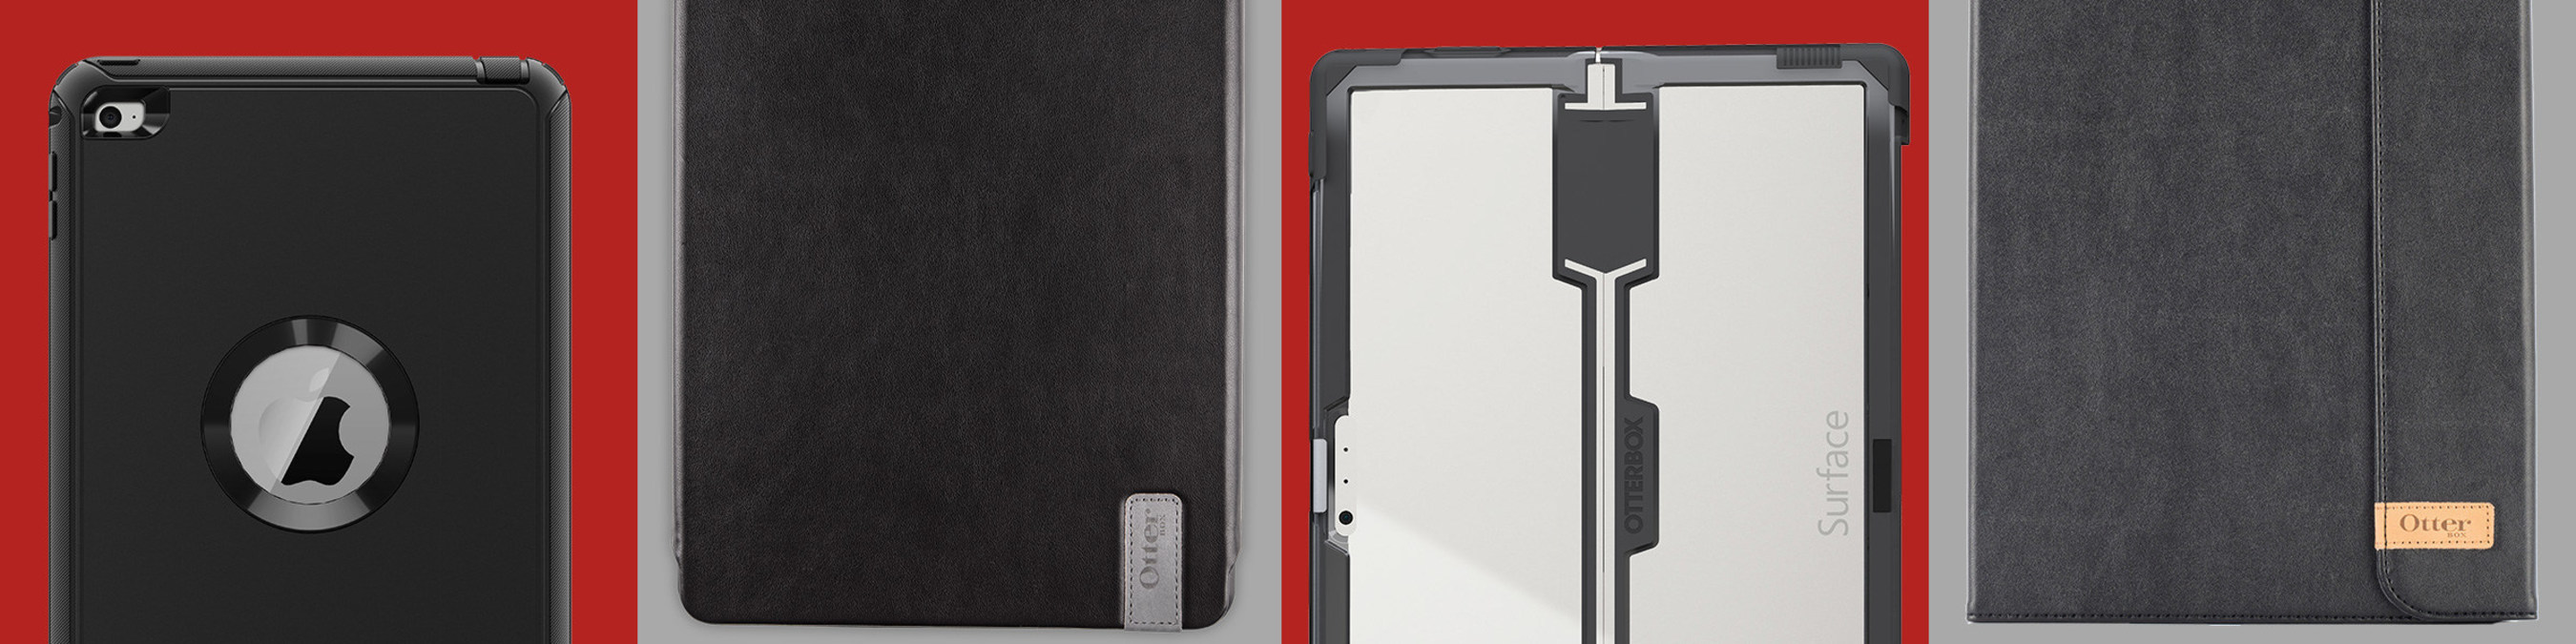 Find the perfect gift for every techie in the household with up to 40 percent off tablet cases Thanksgiving Day through Cyber Monday on otterbox.com.